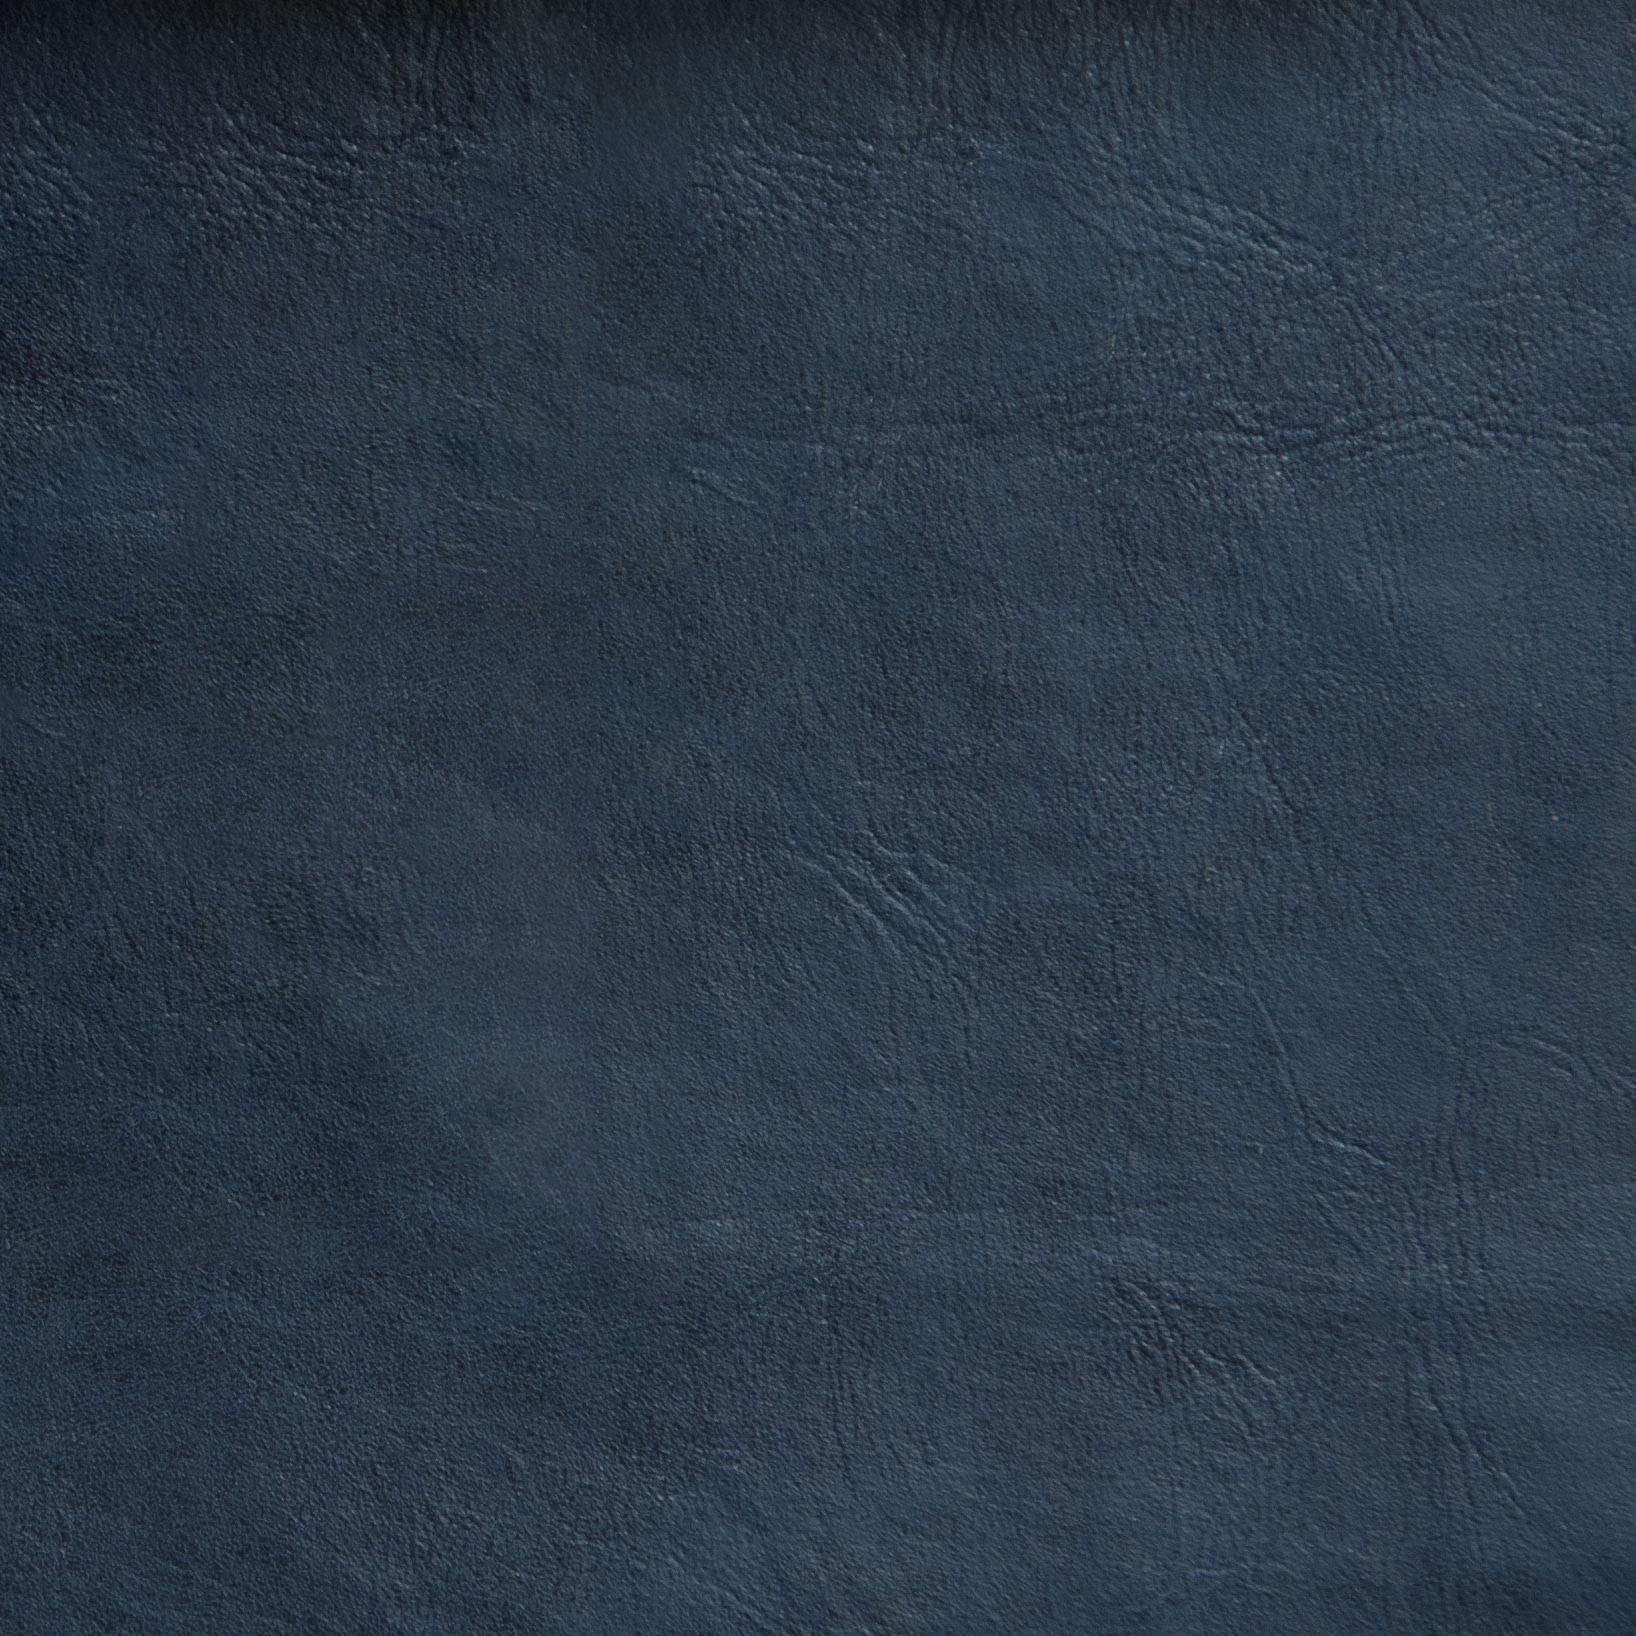 Denim Faux Leather Swatch